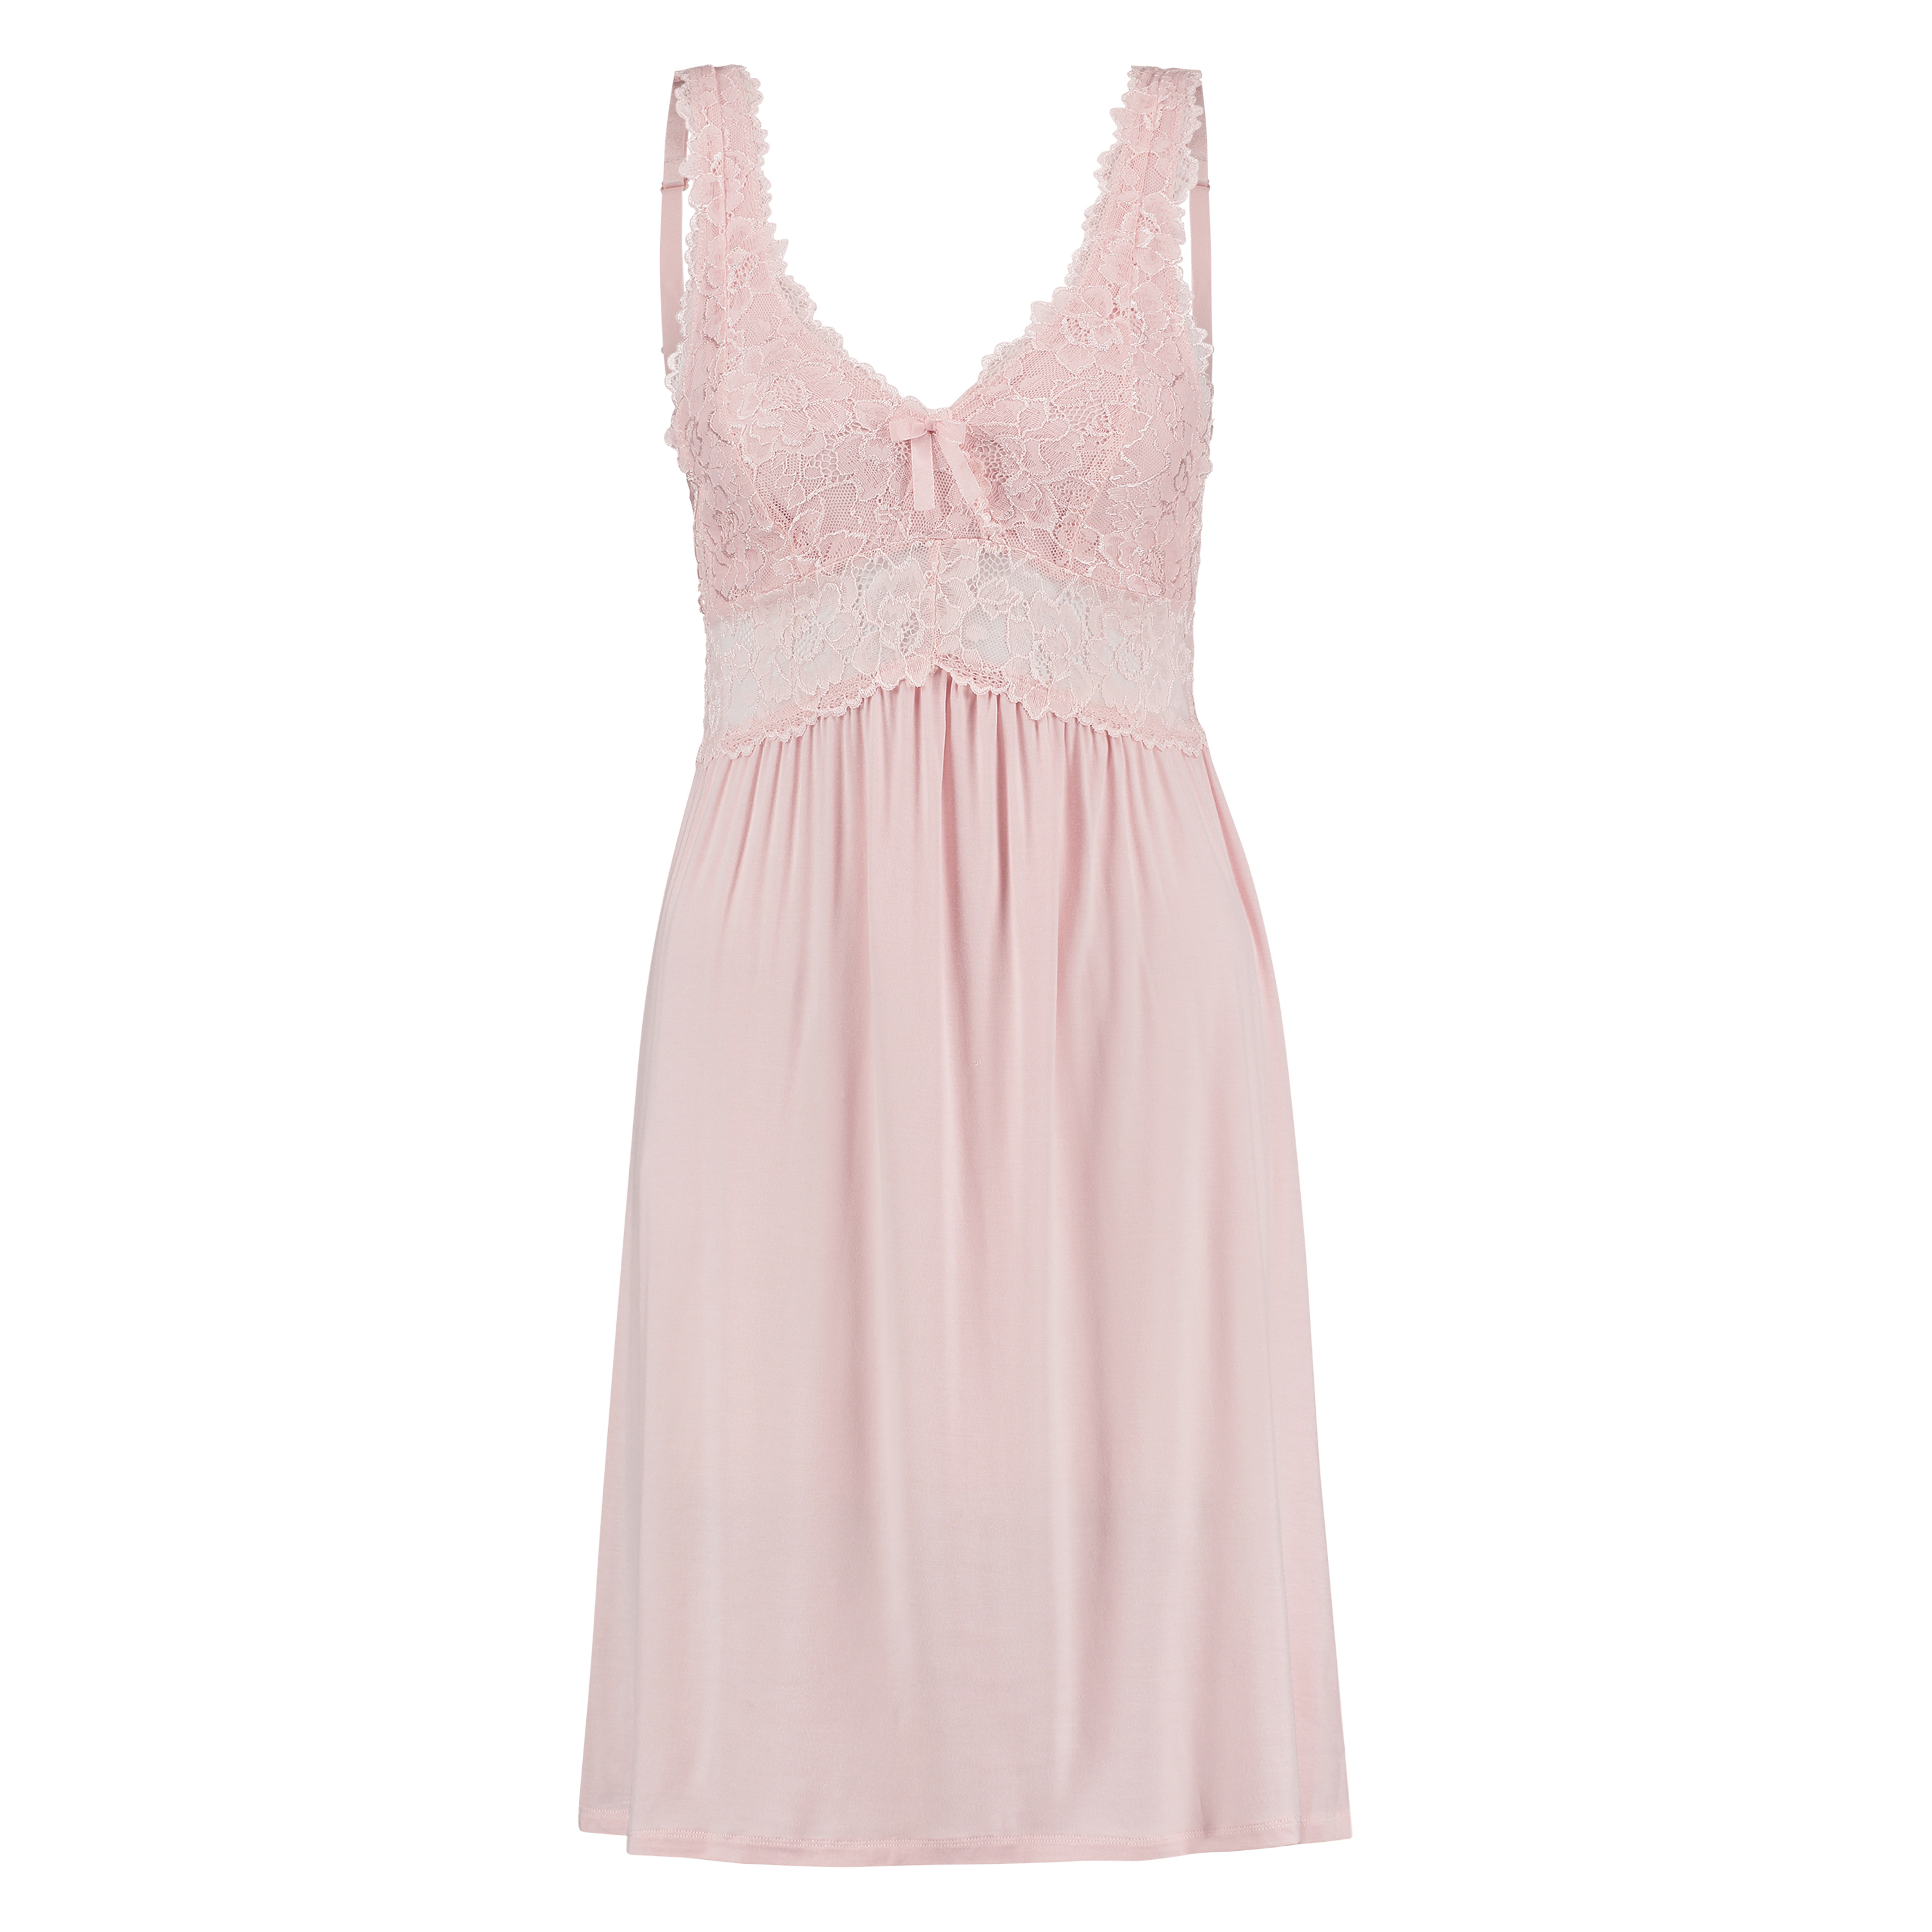 Slipdress Modal Lace, Rose, main